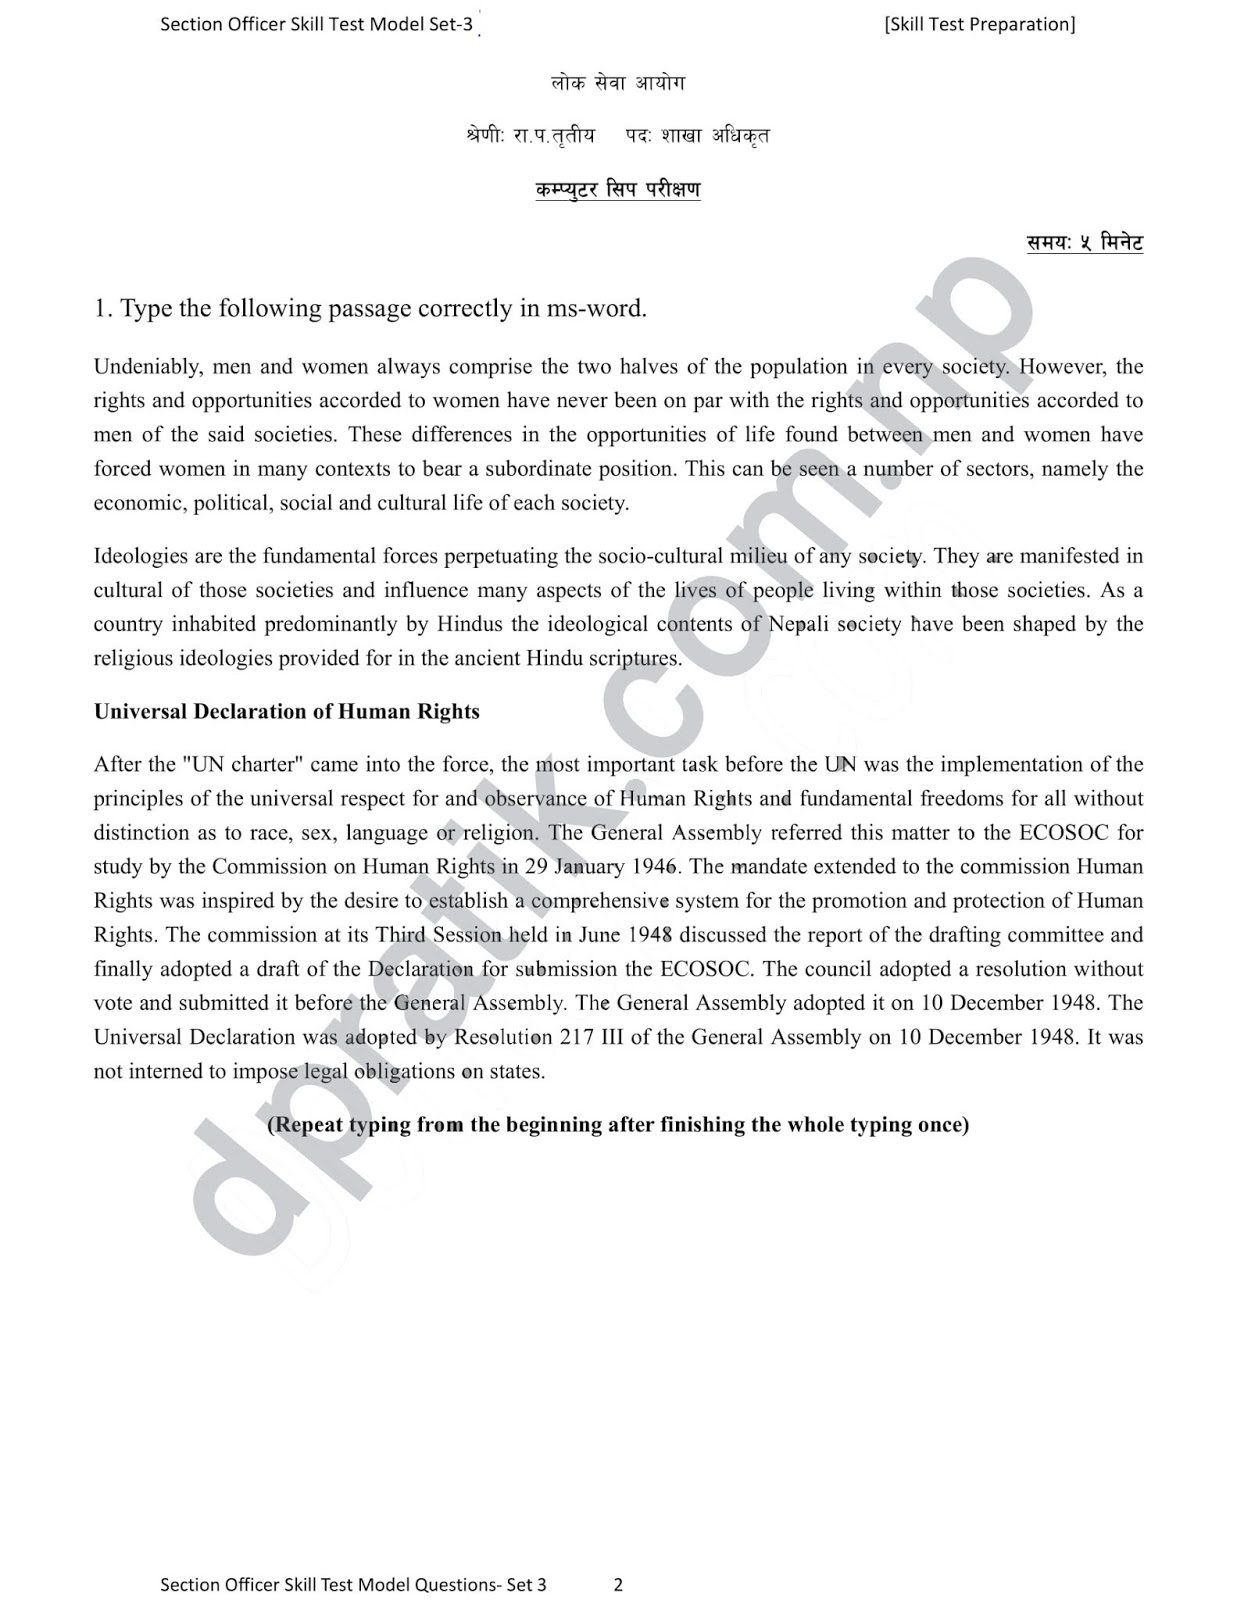 Computer Skill Test Practice Question Set 1 For Section Officer, Na.Su And Kharidar